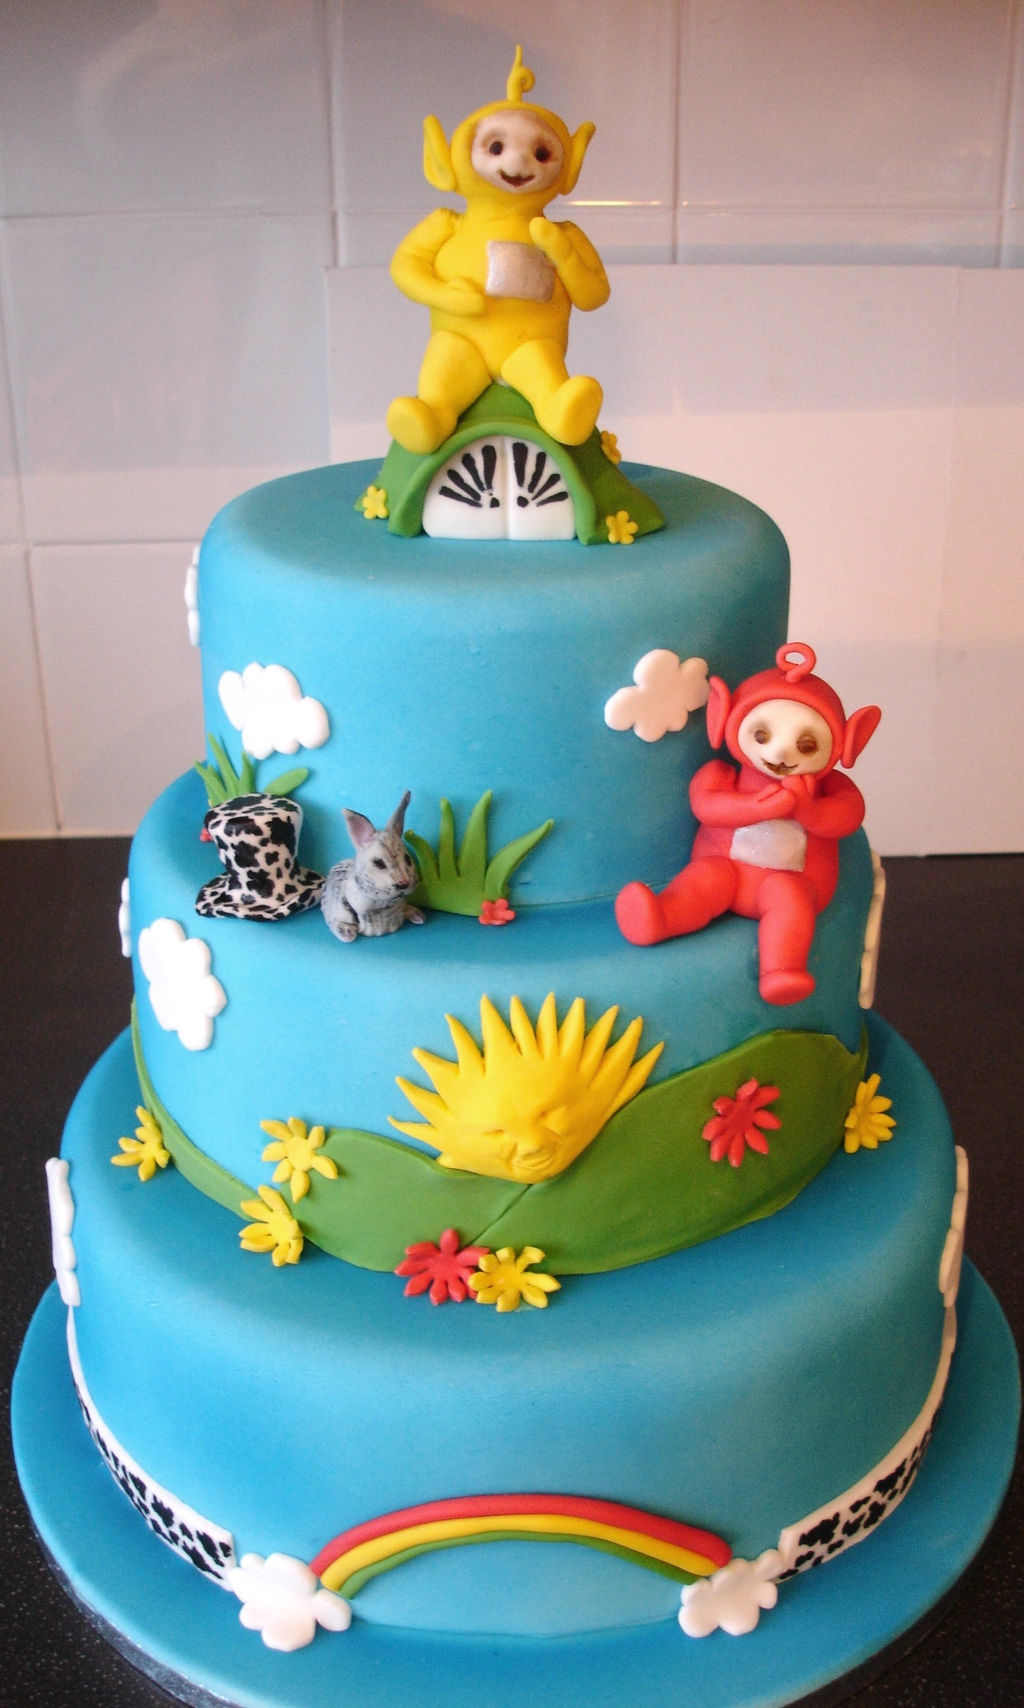 Lisas Cakes Speciality Cakes And Cupcakes For All